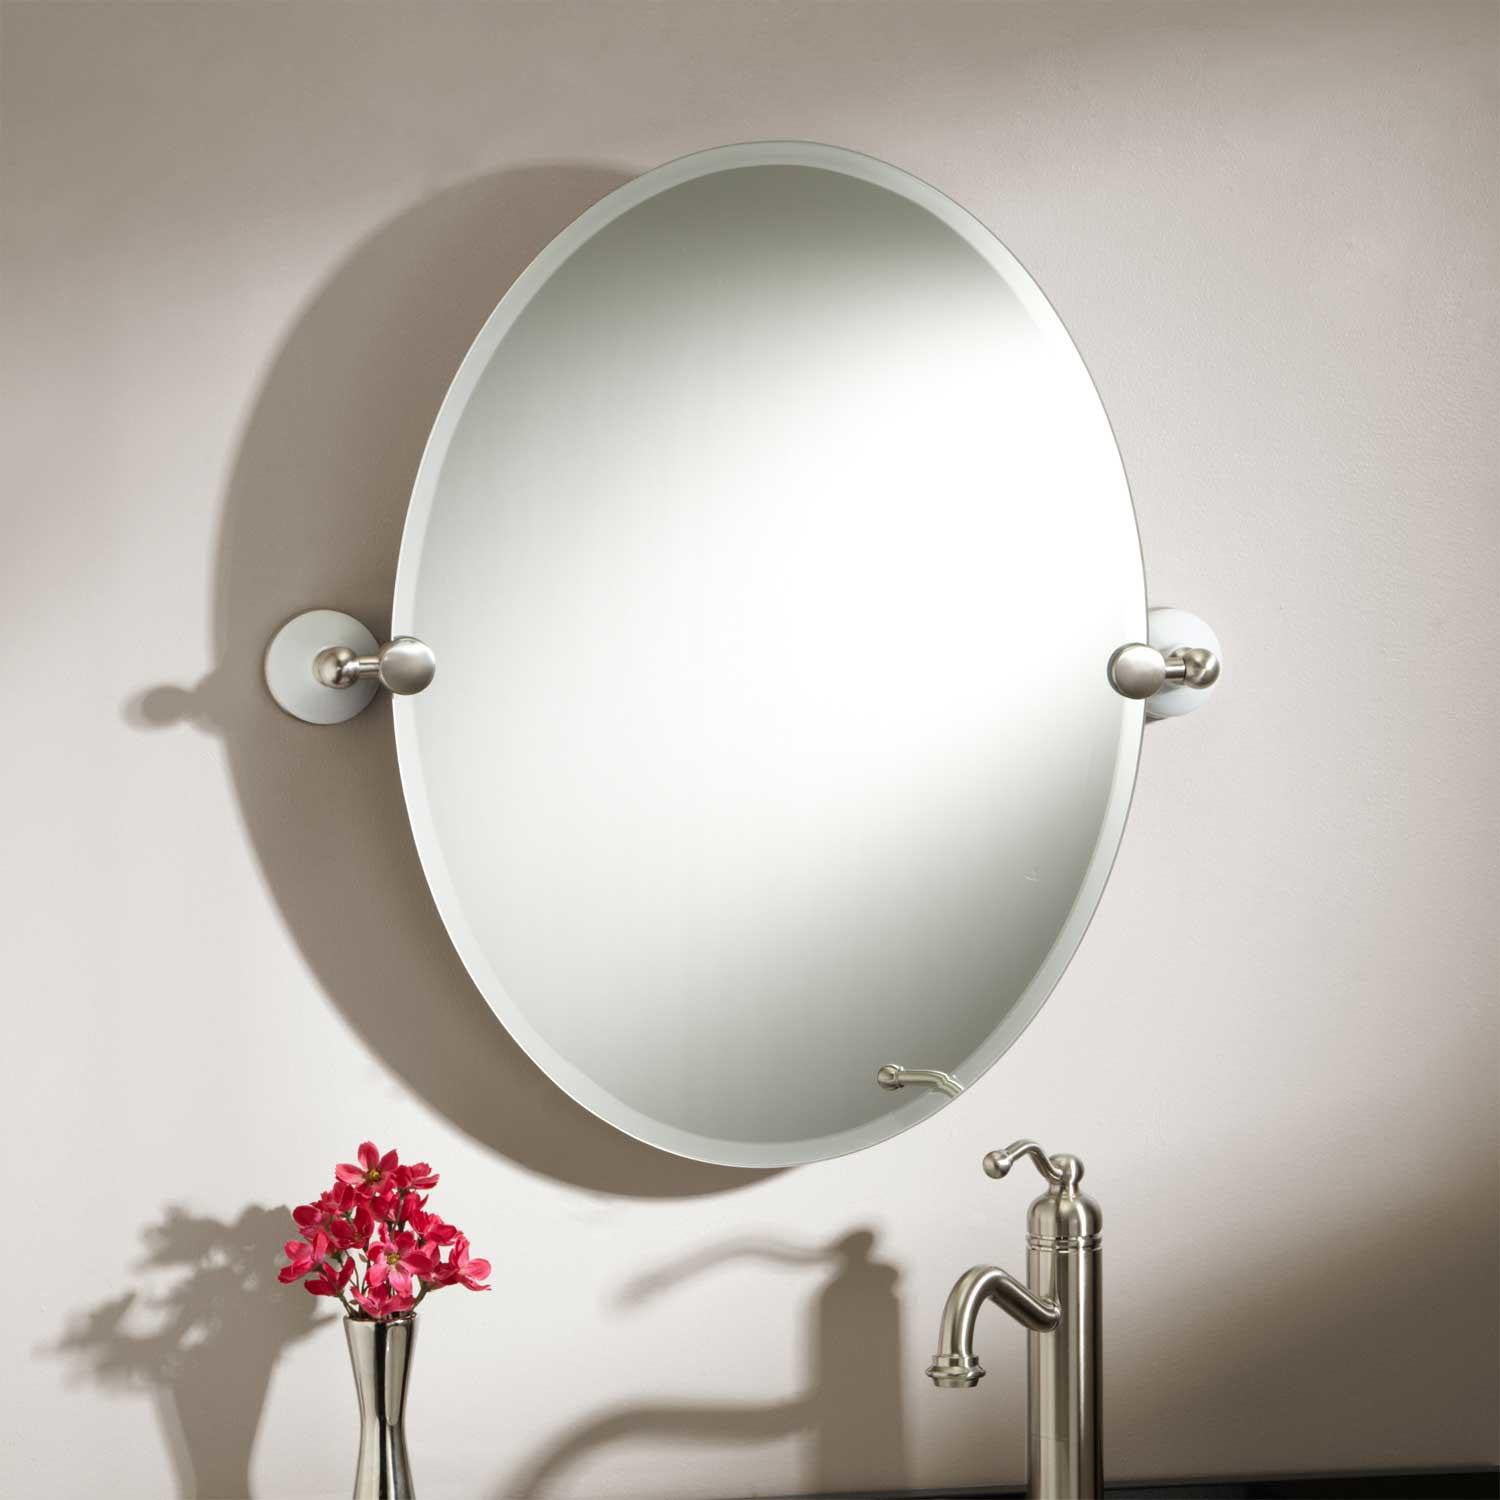 Oval bathroom mirrors brushed nickel best decor things Bathroom wall mirrors brushed nickel